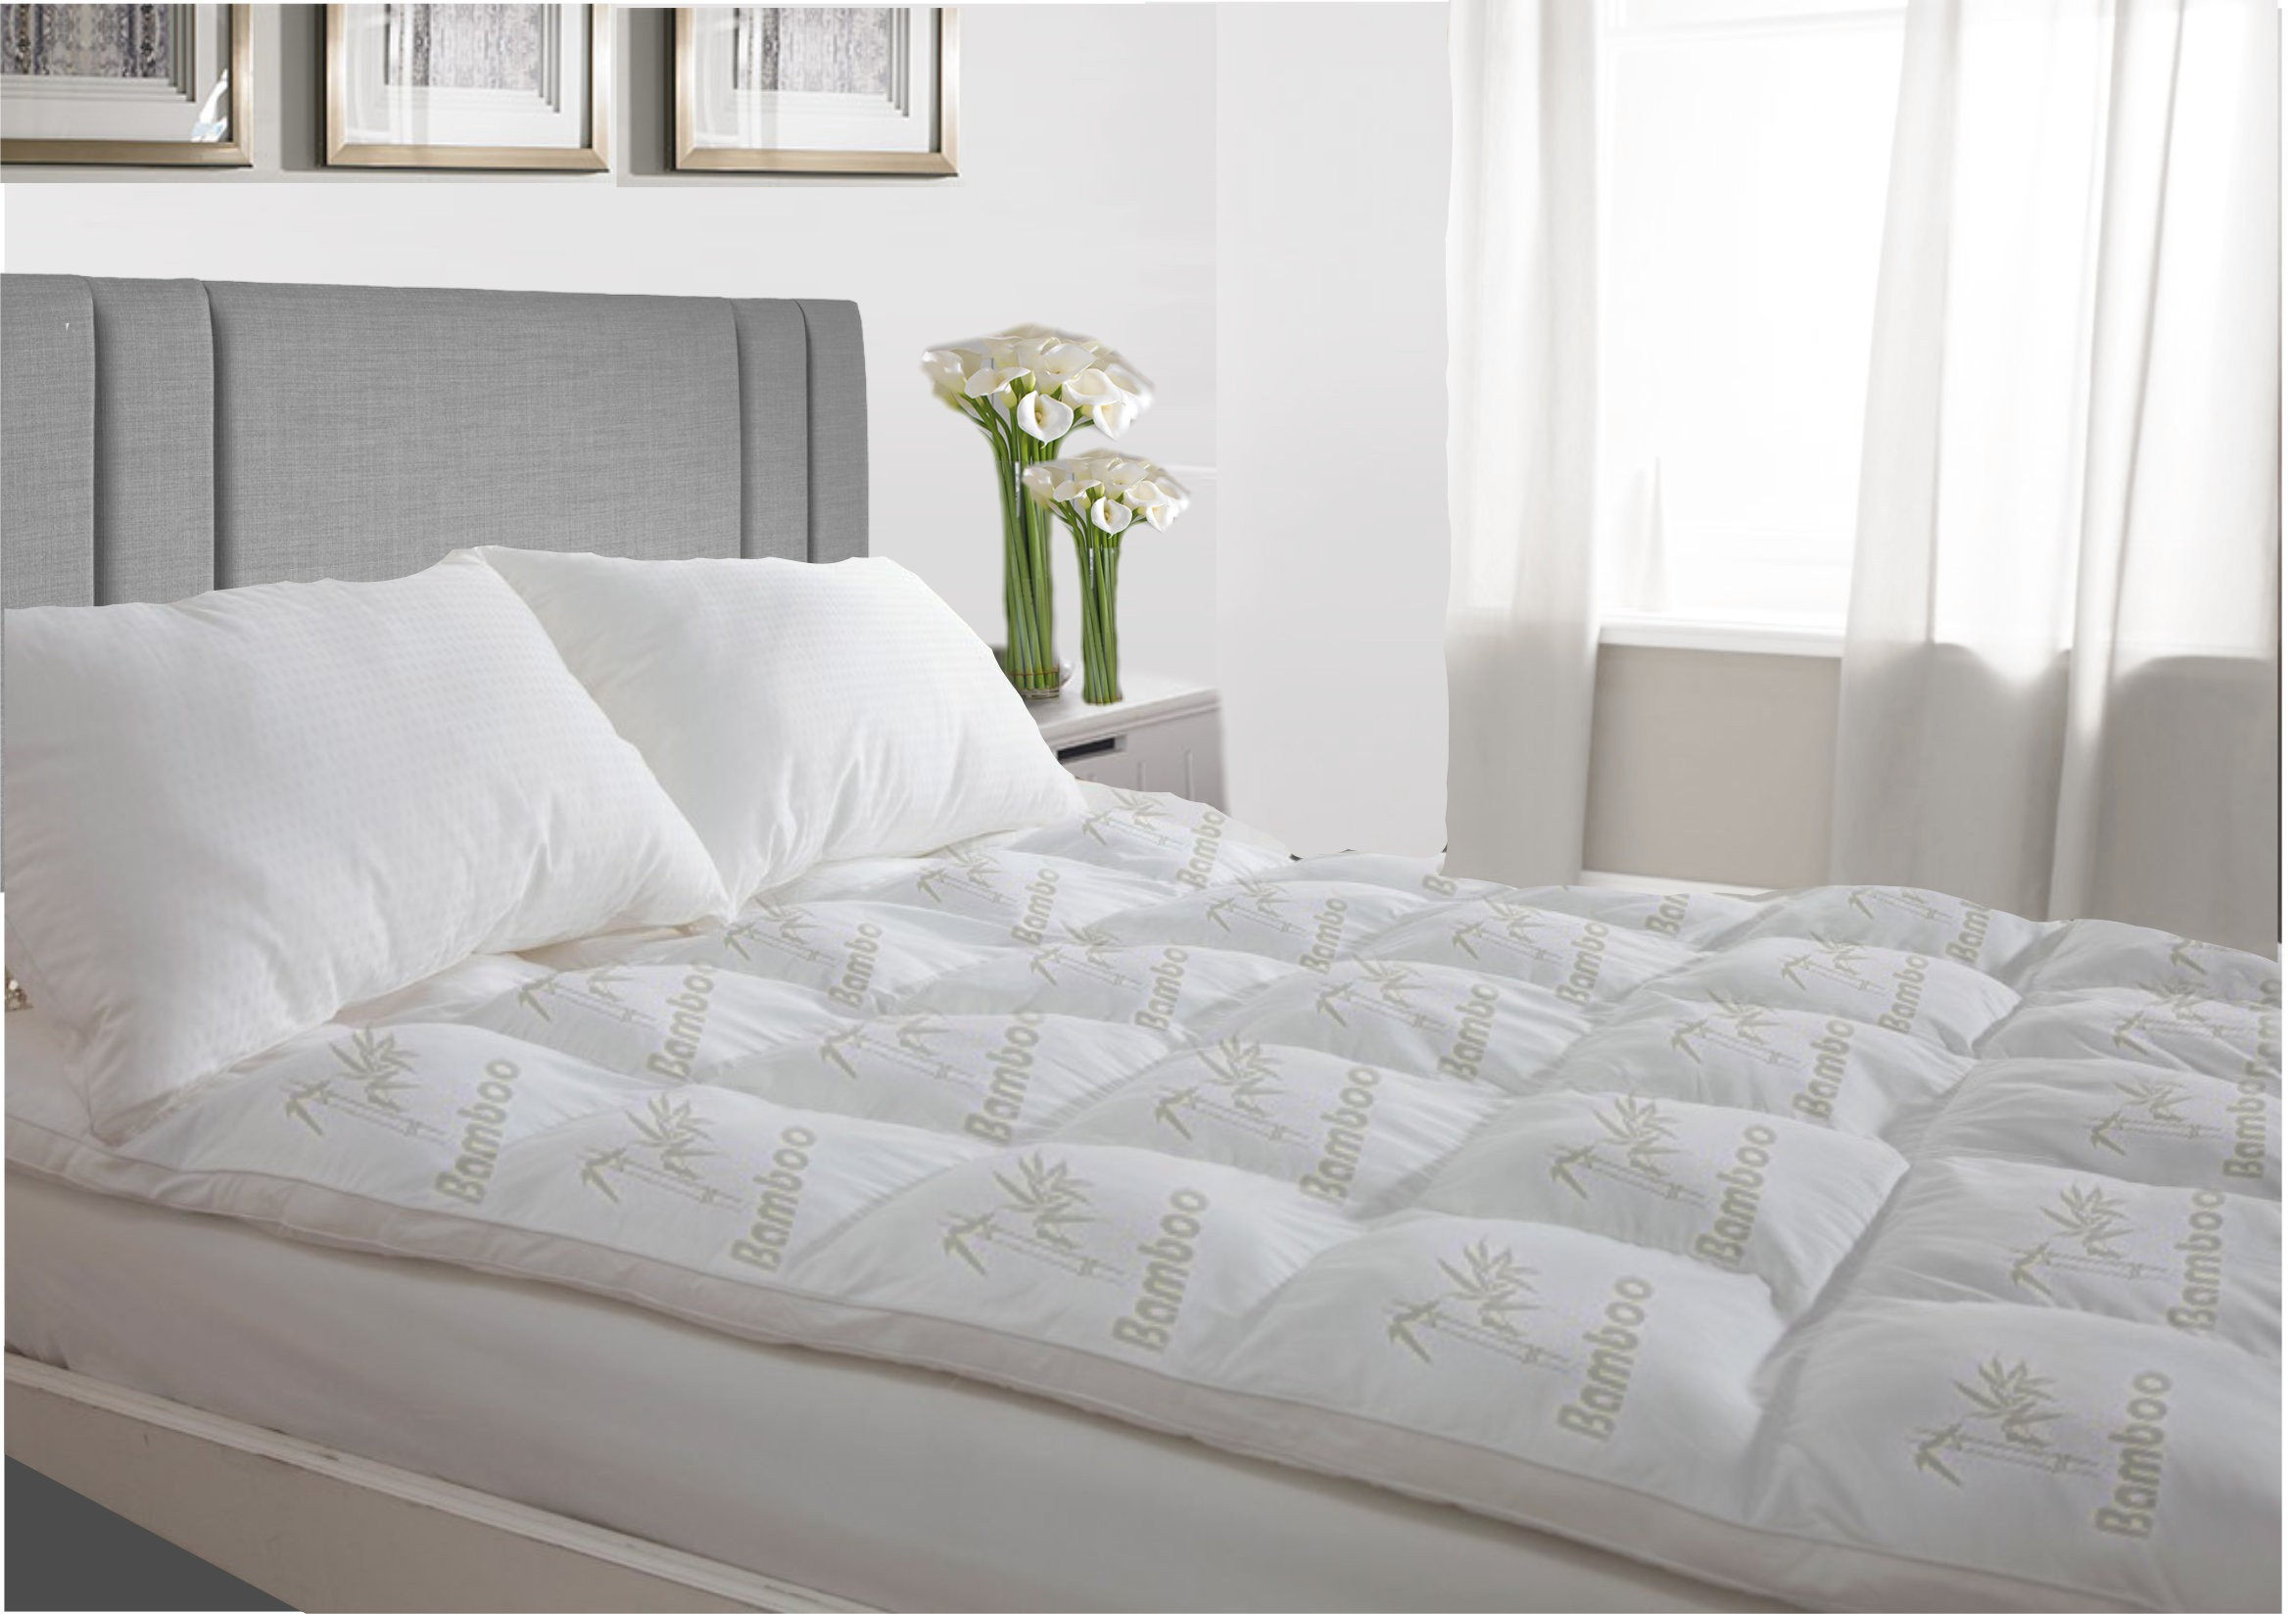 Bamboo Mattress Topper Reviews by www.snoremagazine.com